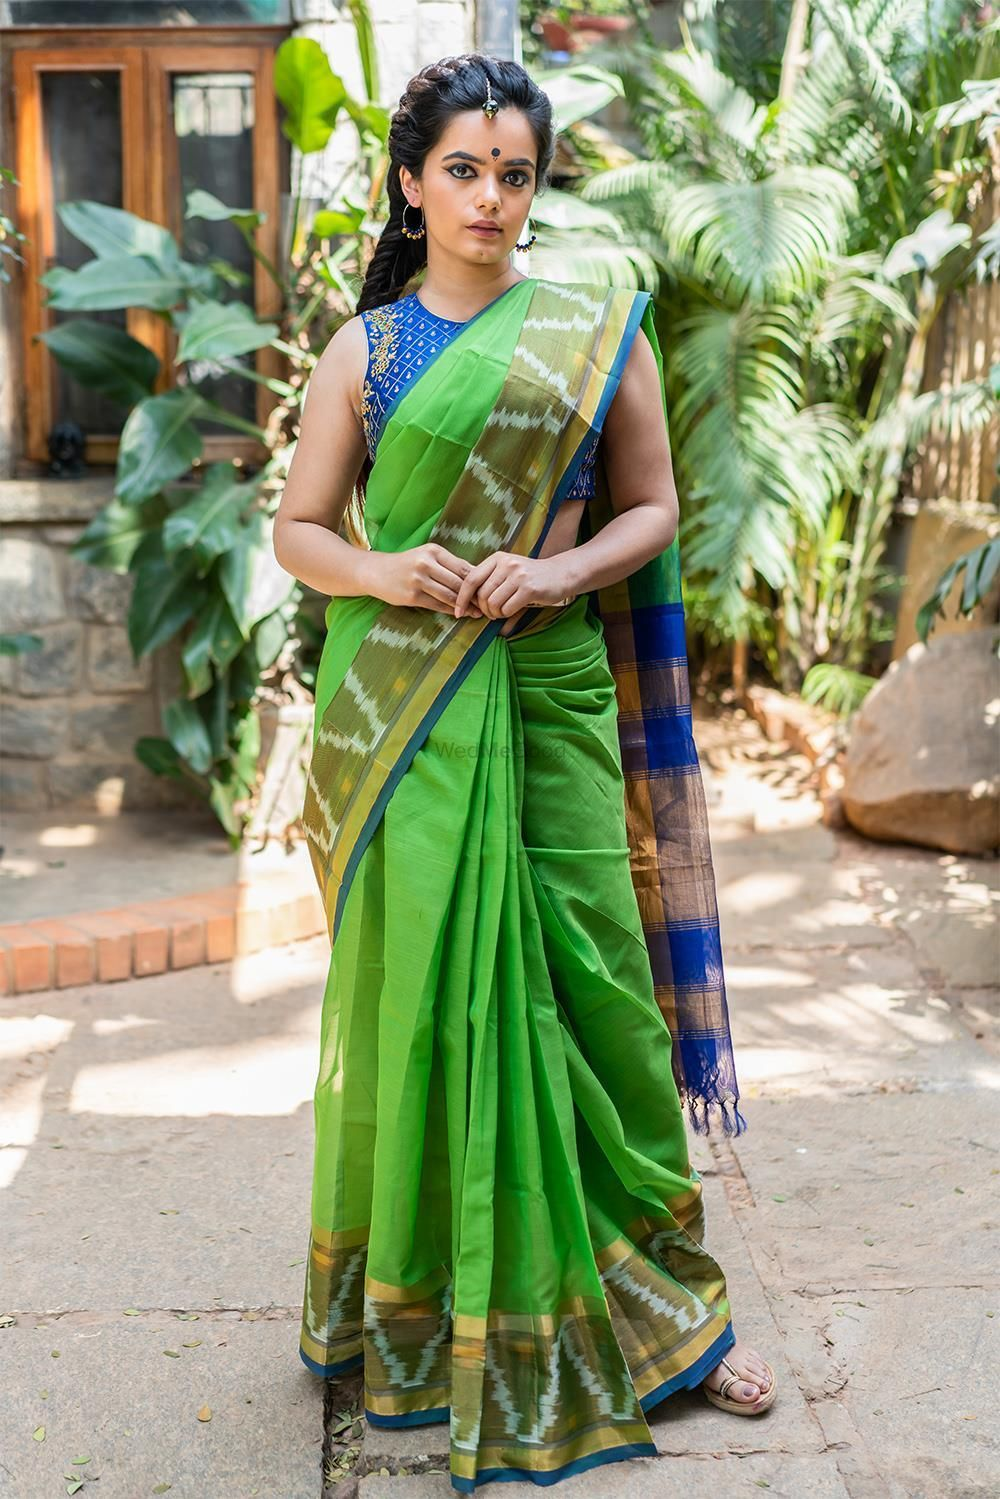 Photo From Saurvi - By House of Blouse